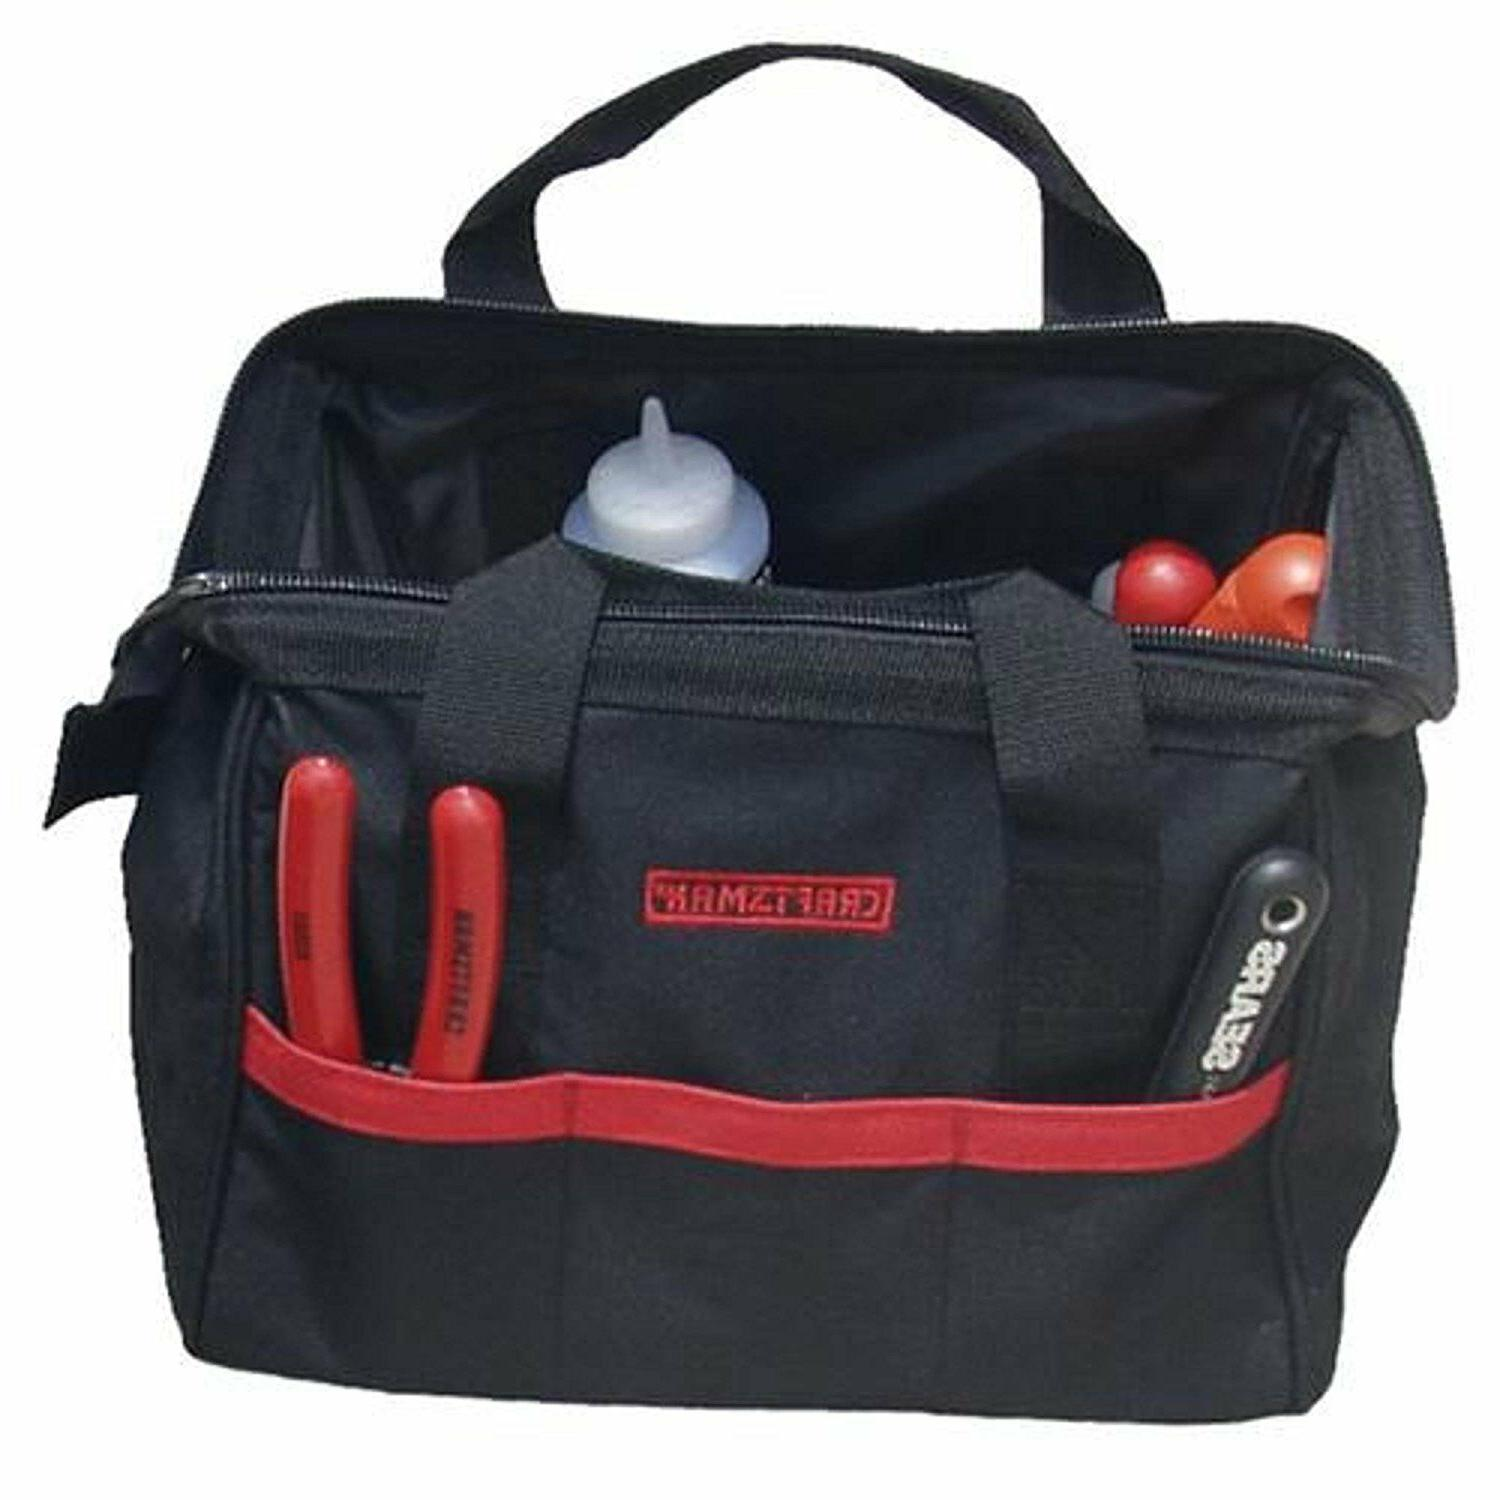 Craftsman Bag Set 940558 2 bags inches and